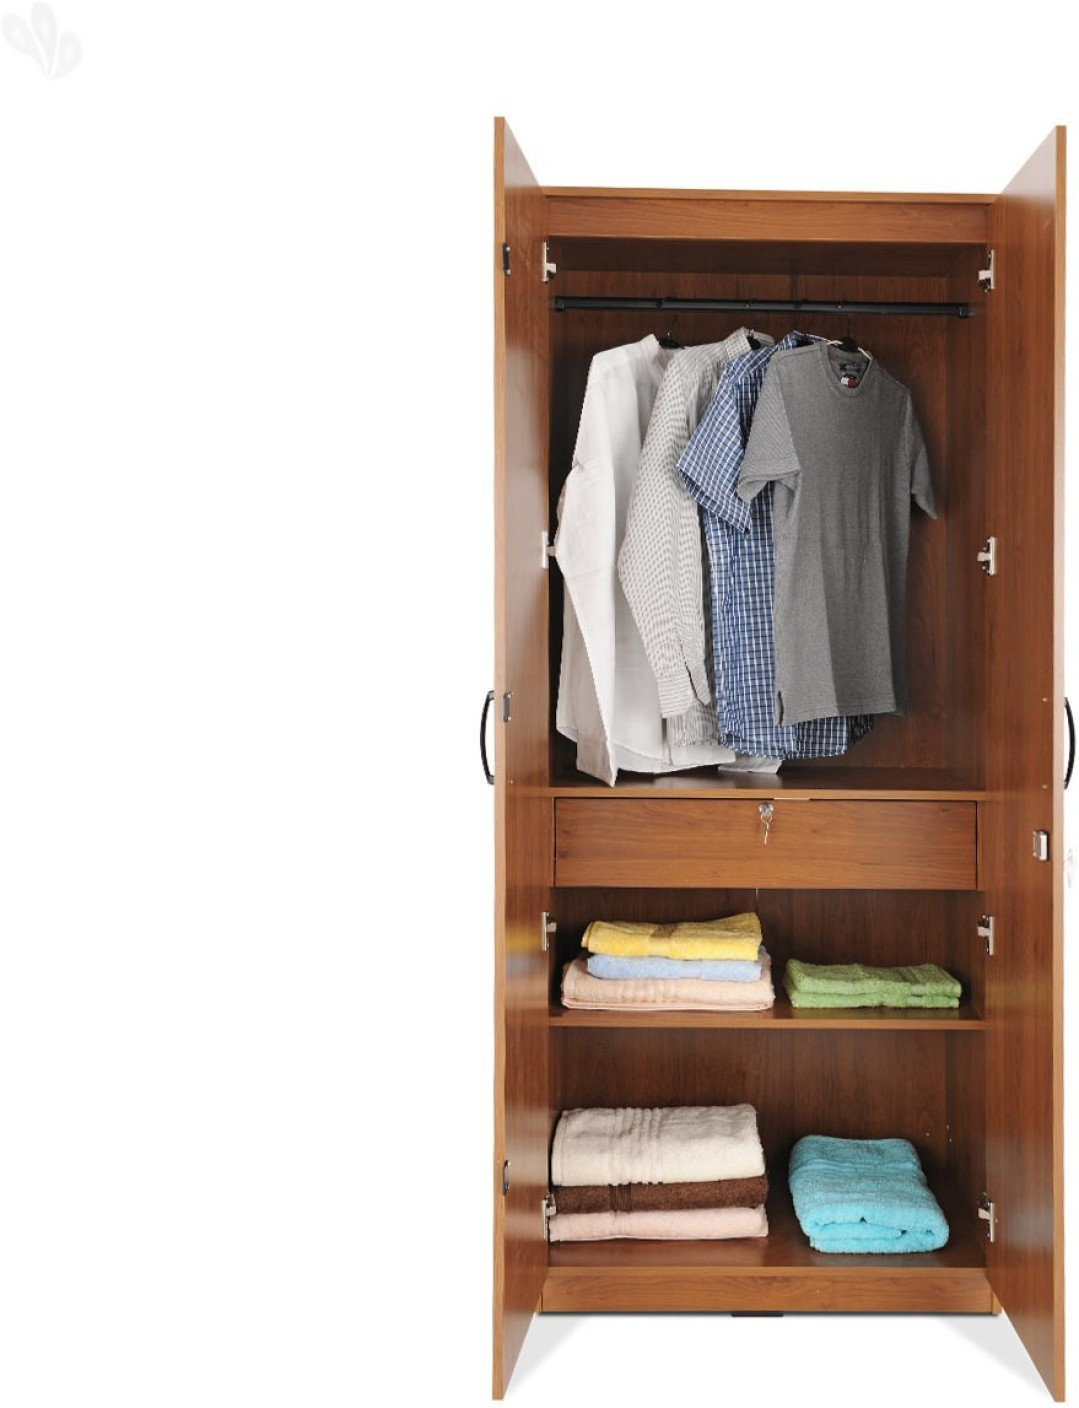 zuari furniture wardrobe. Zuari Engineered Wood 2 Door Wardrobe Share Home Furniture